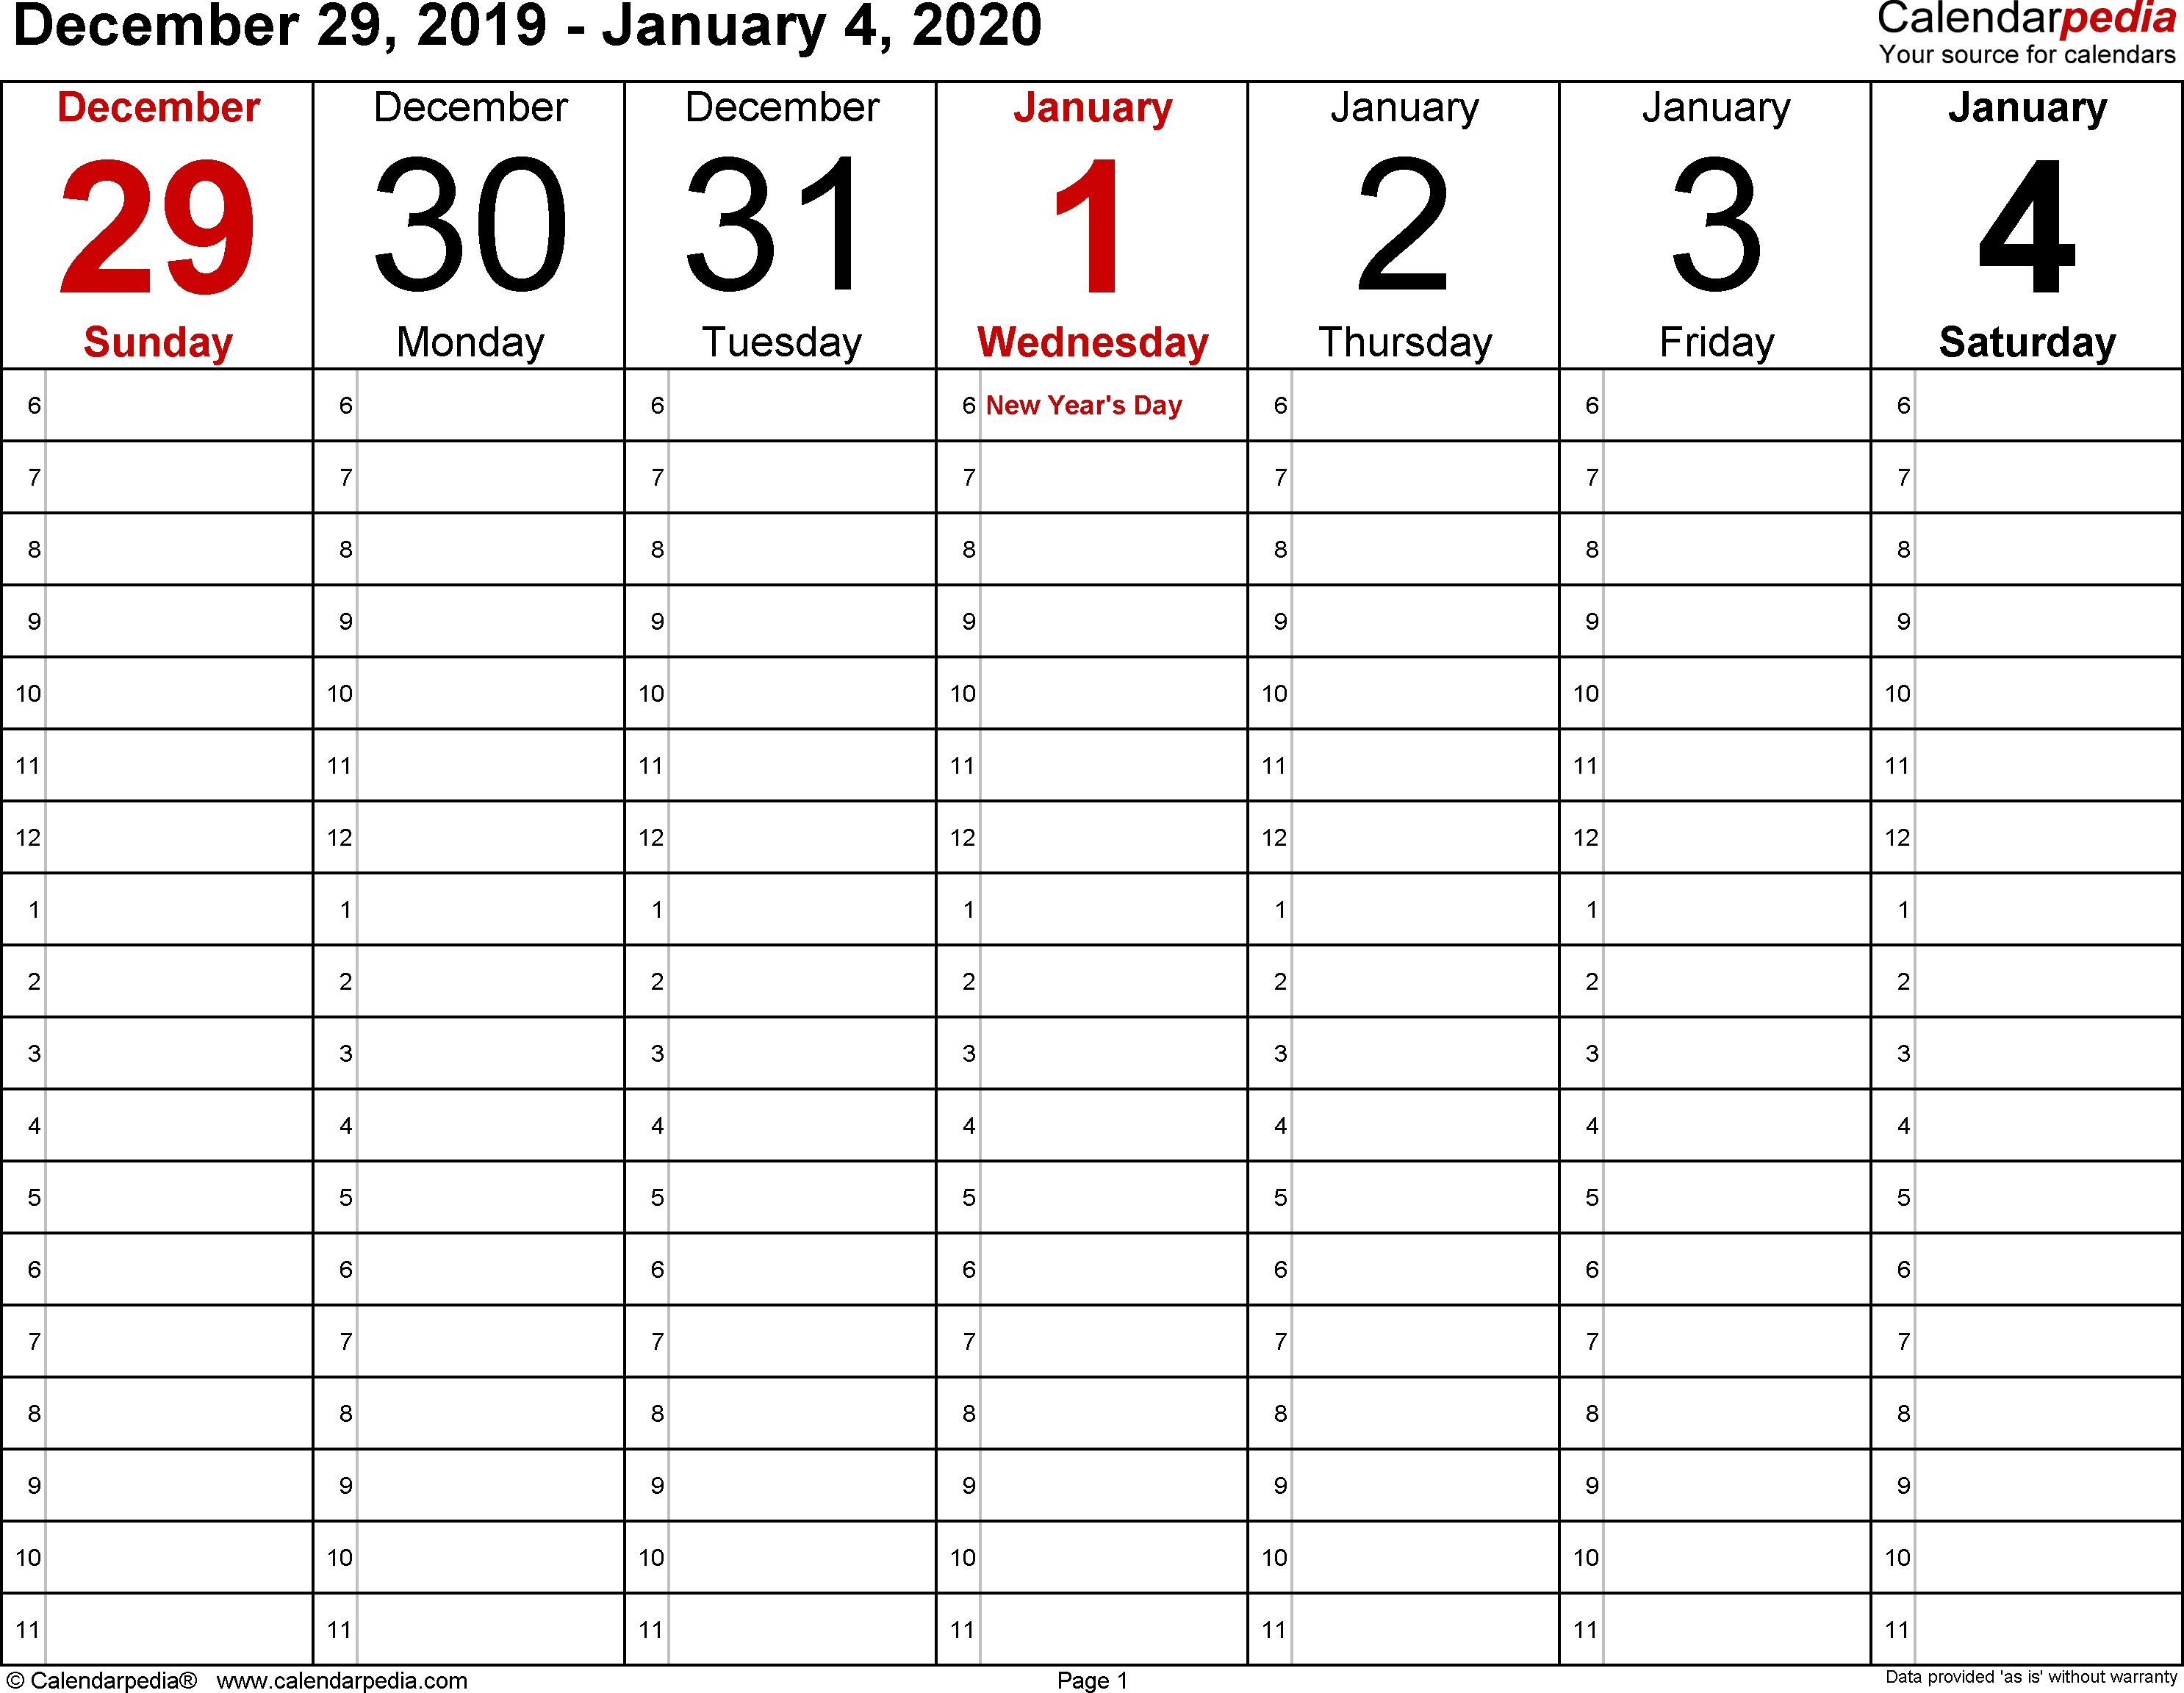 Weekly Calendar 2020 For Word - 12 Free Printable Templates within Free Printable Weekly Calendar 2020